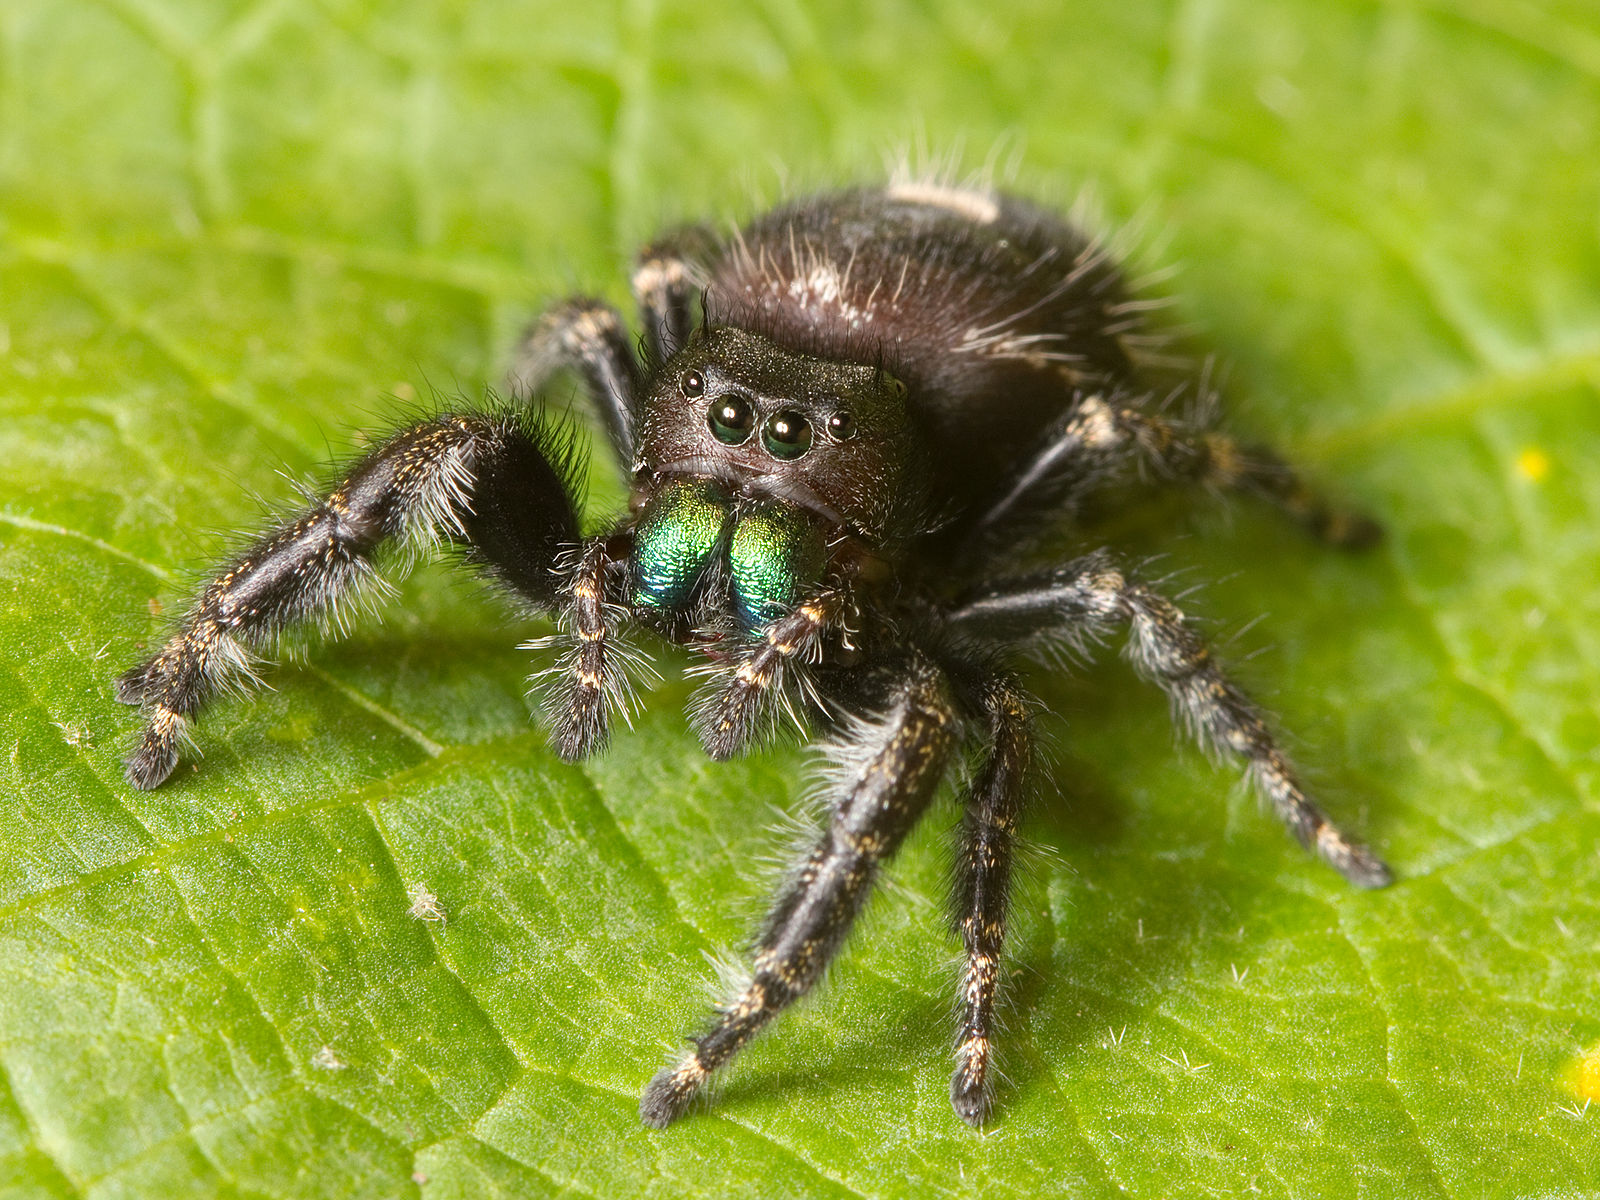 A  Phidippus audax  jumping spider in Nashville, Tennessee is ready to hear some sounds! Source: Wikimedia Commons.